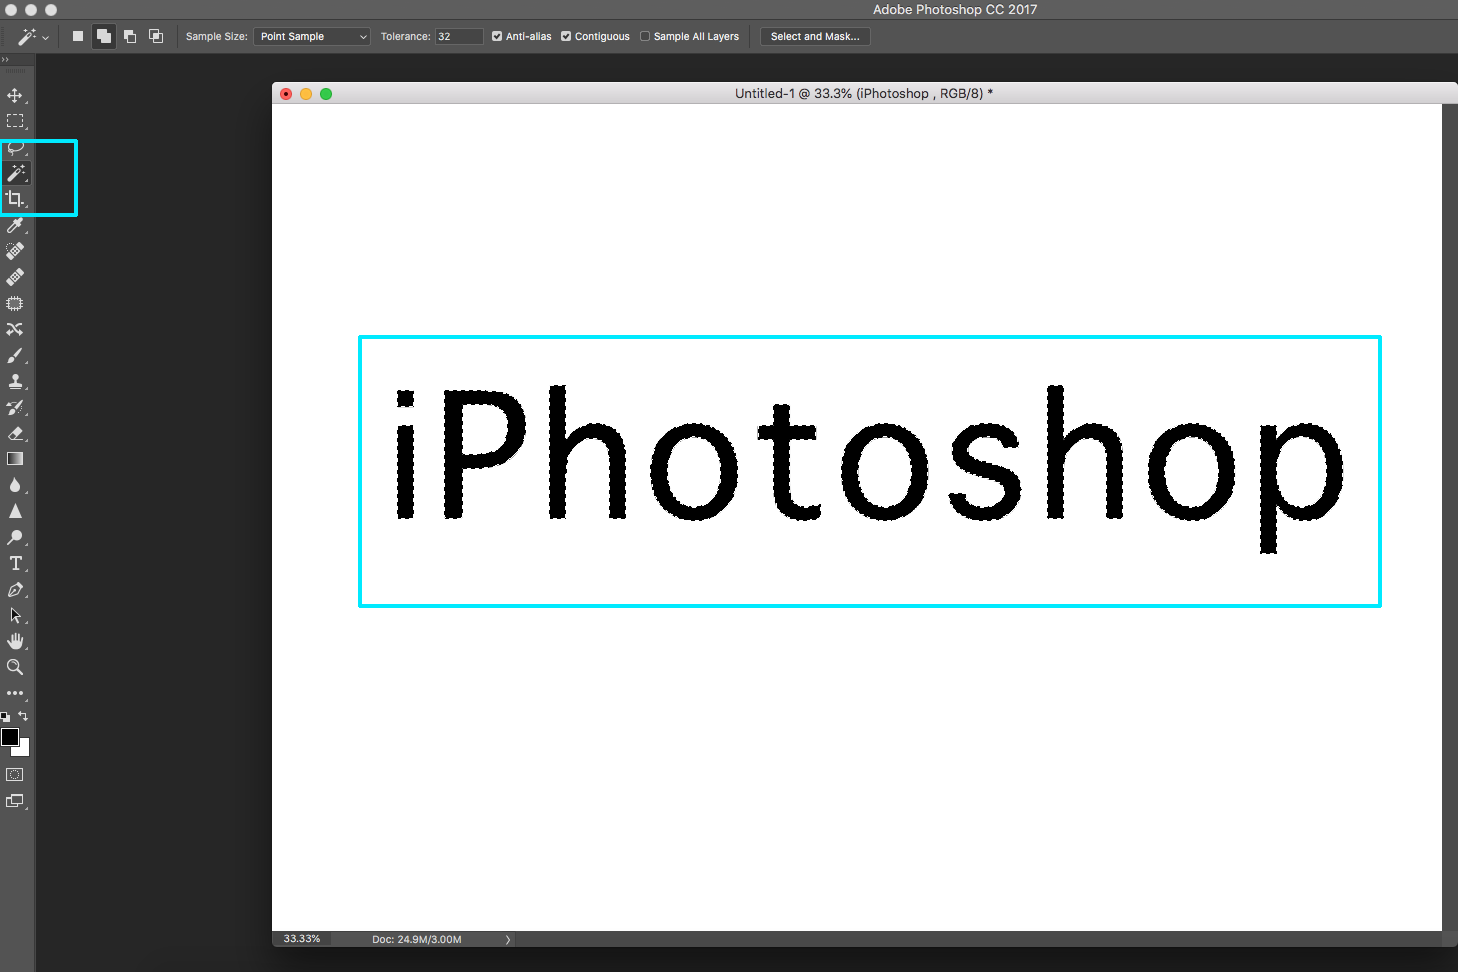 photoshop iphotoshop screenshot logo watermark signature